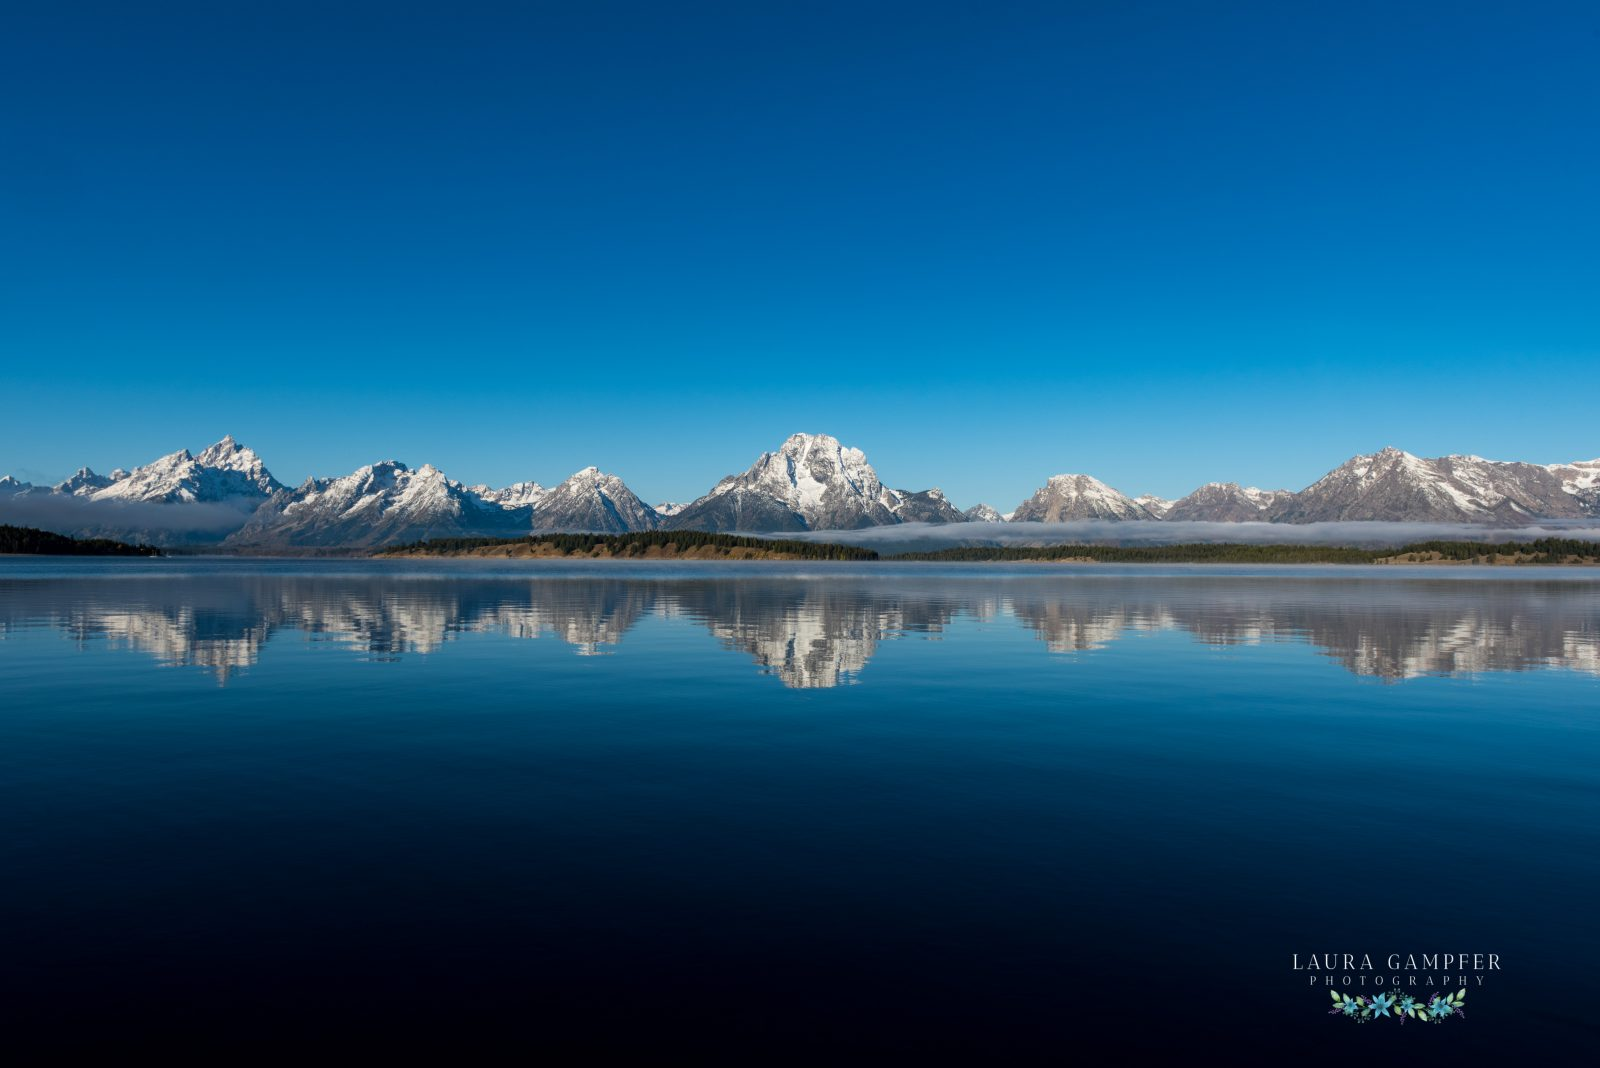 Reflections of the Grand Tetons, Wyoming